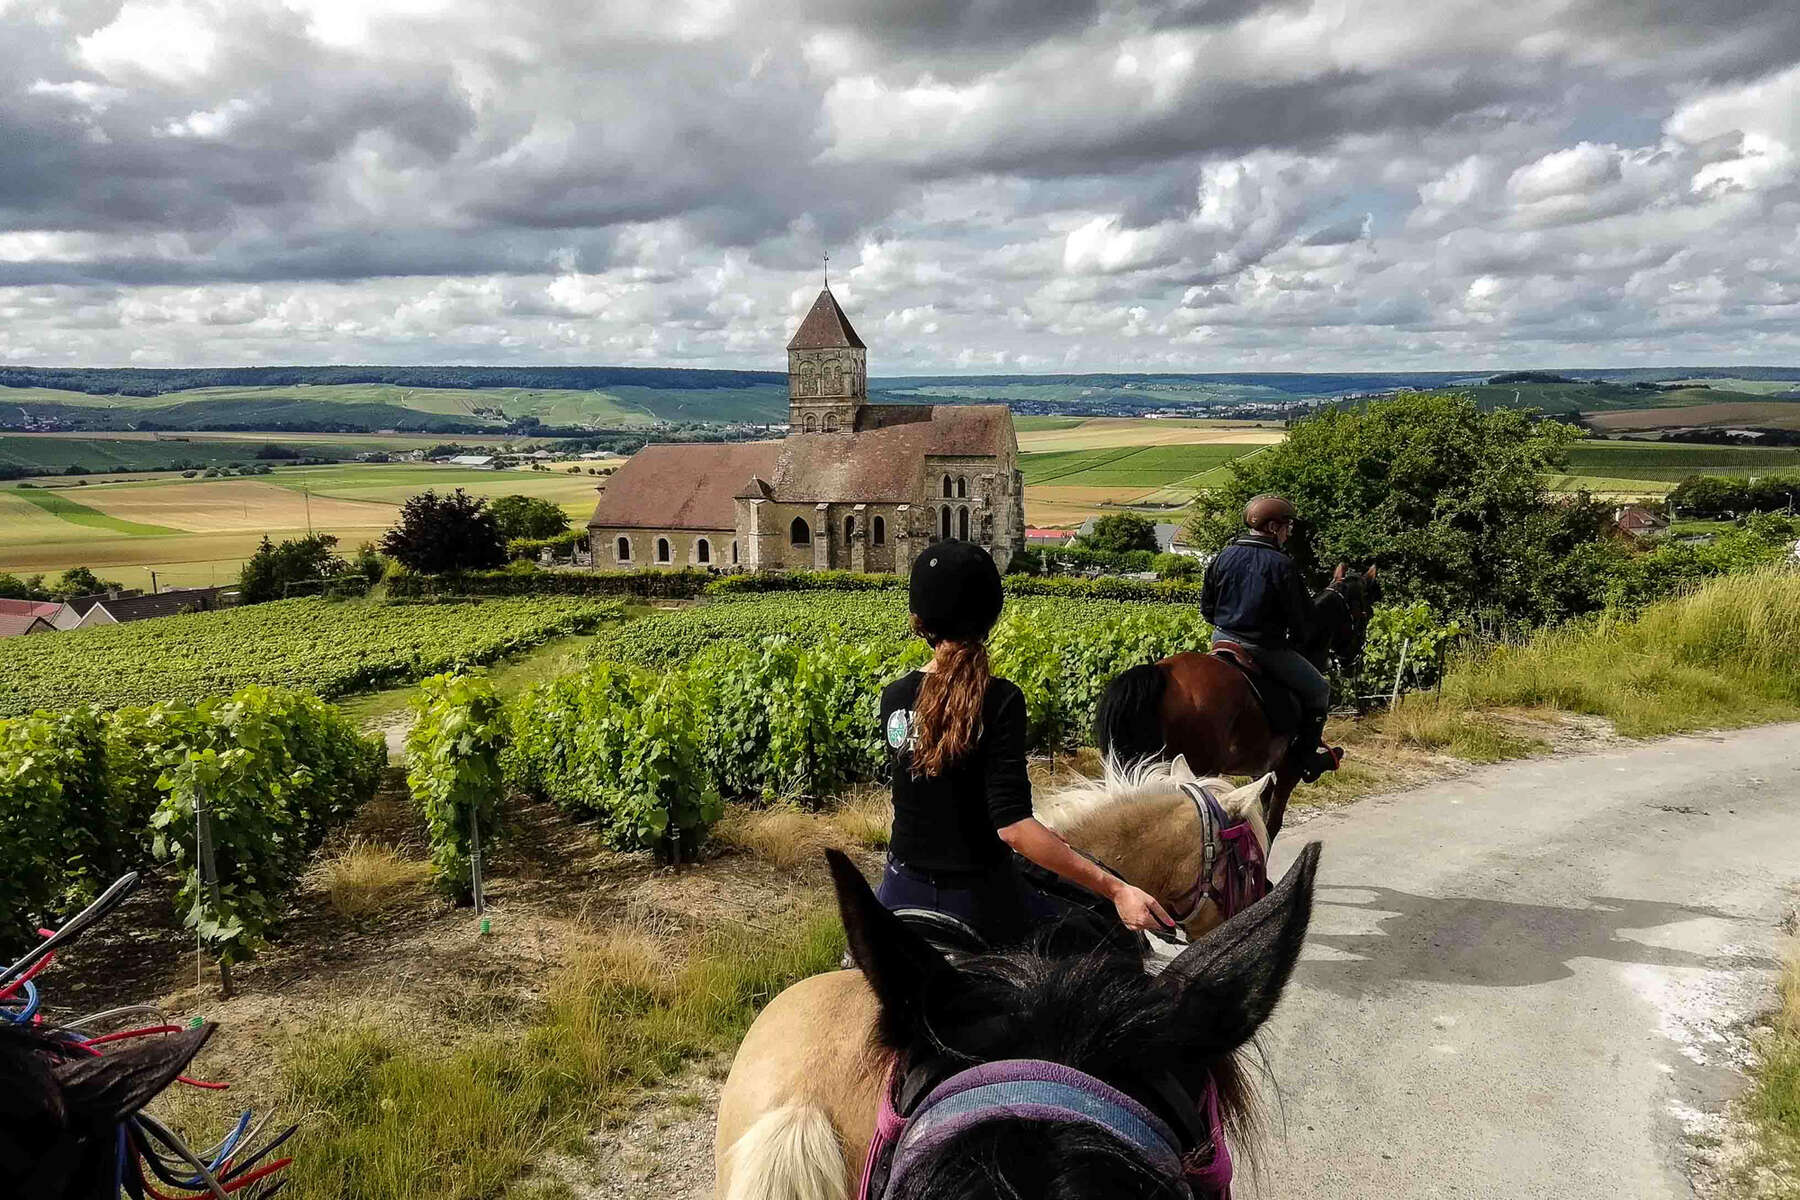 Trail riders in the French region of Alsace